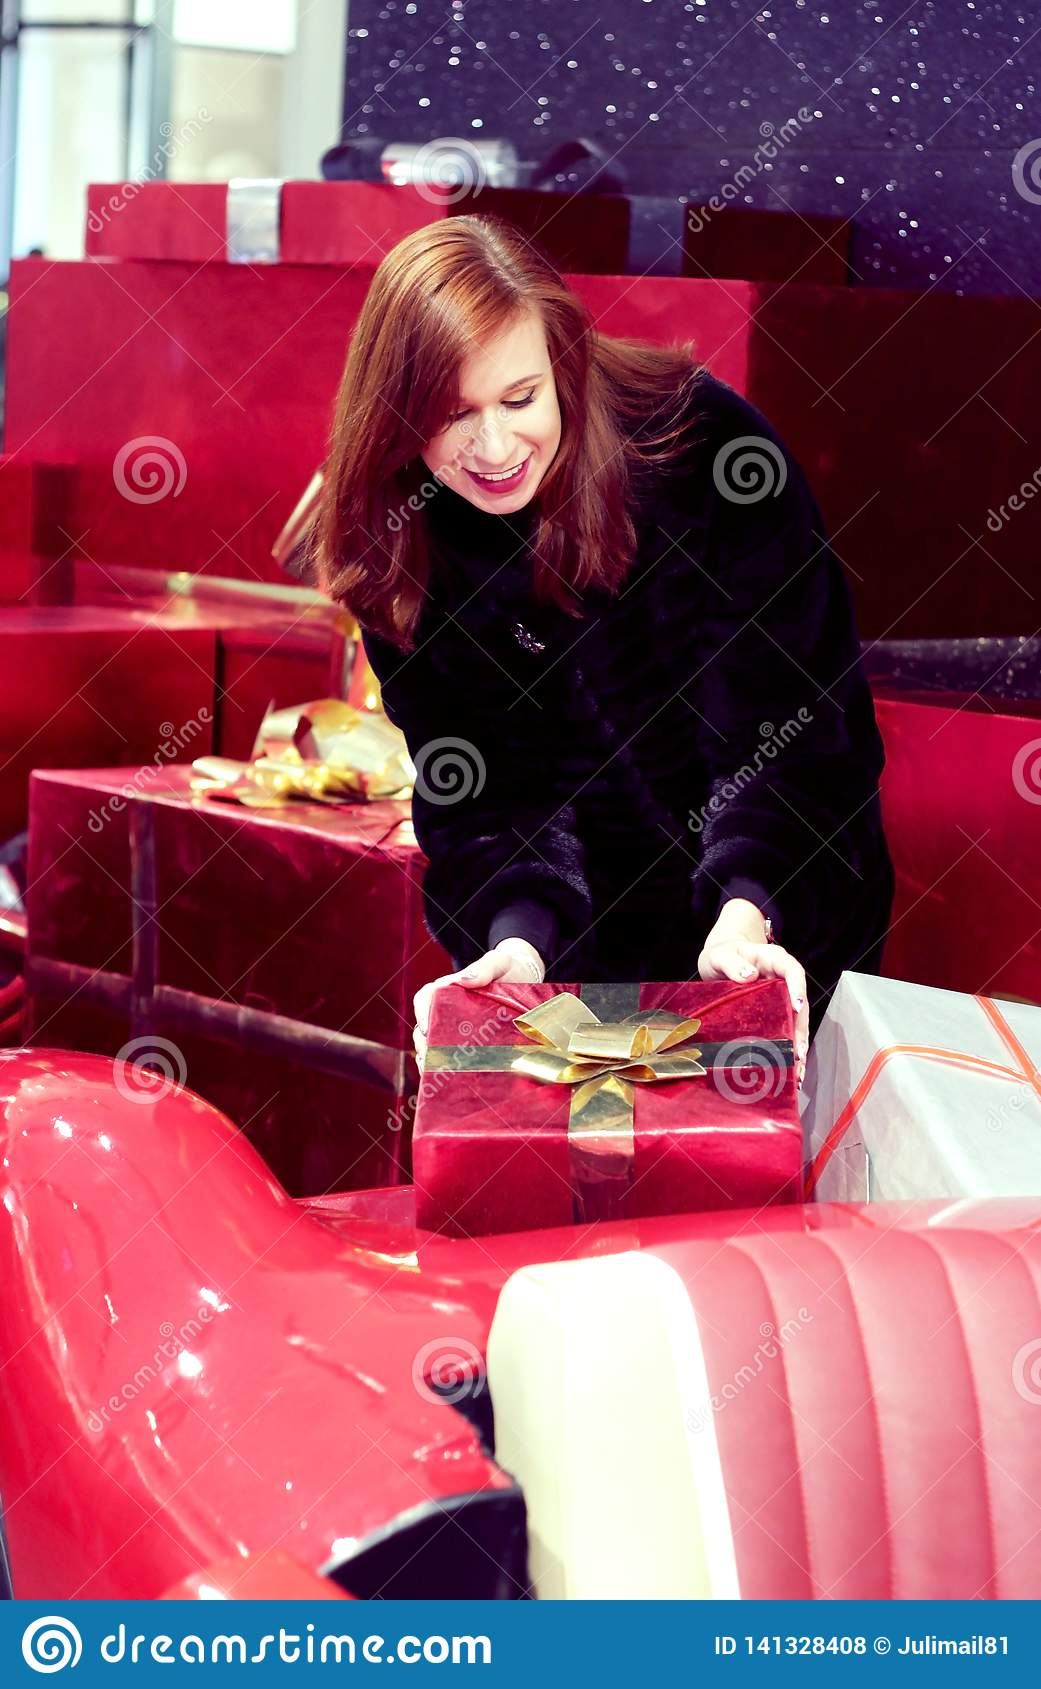 A girl with red hair is holding a box with a gift, which lies on a red car. The concept of festive mood and nice gifts